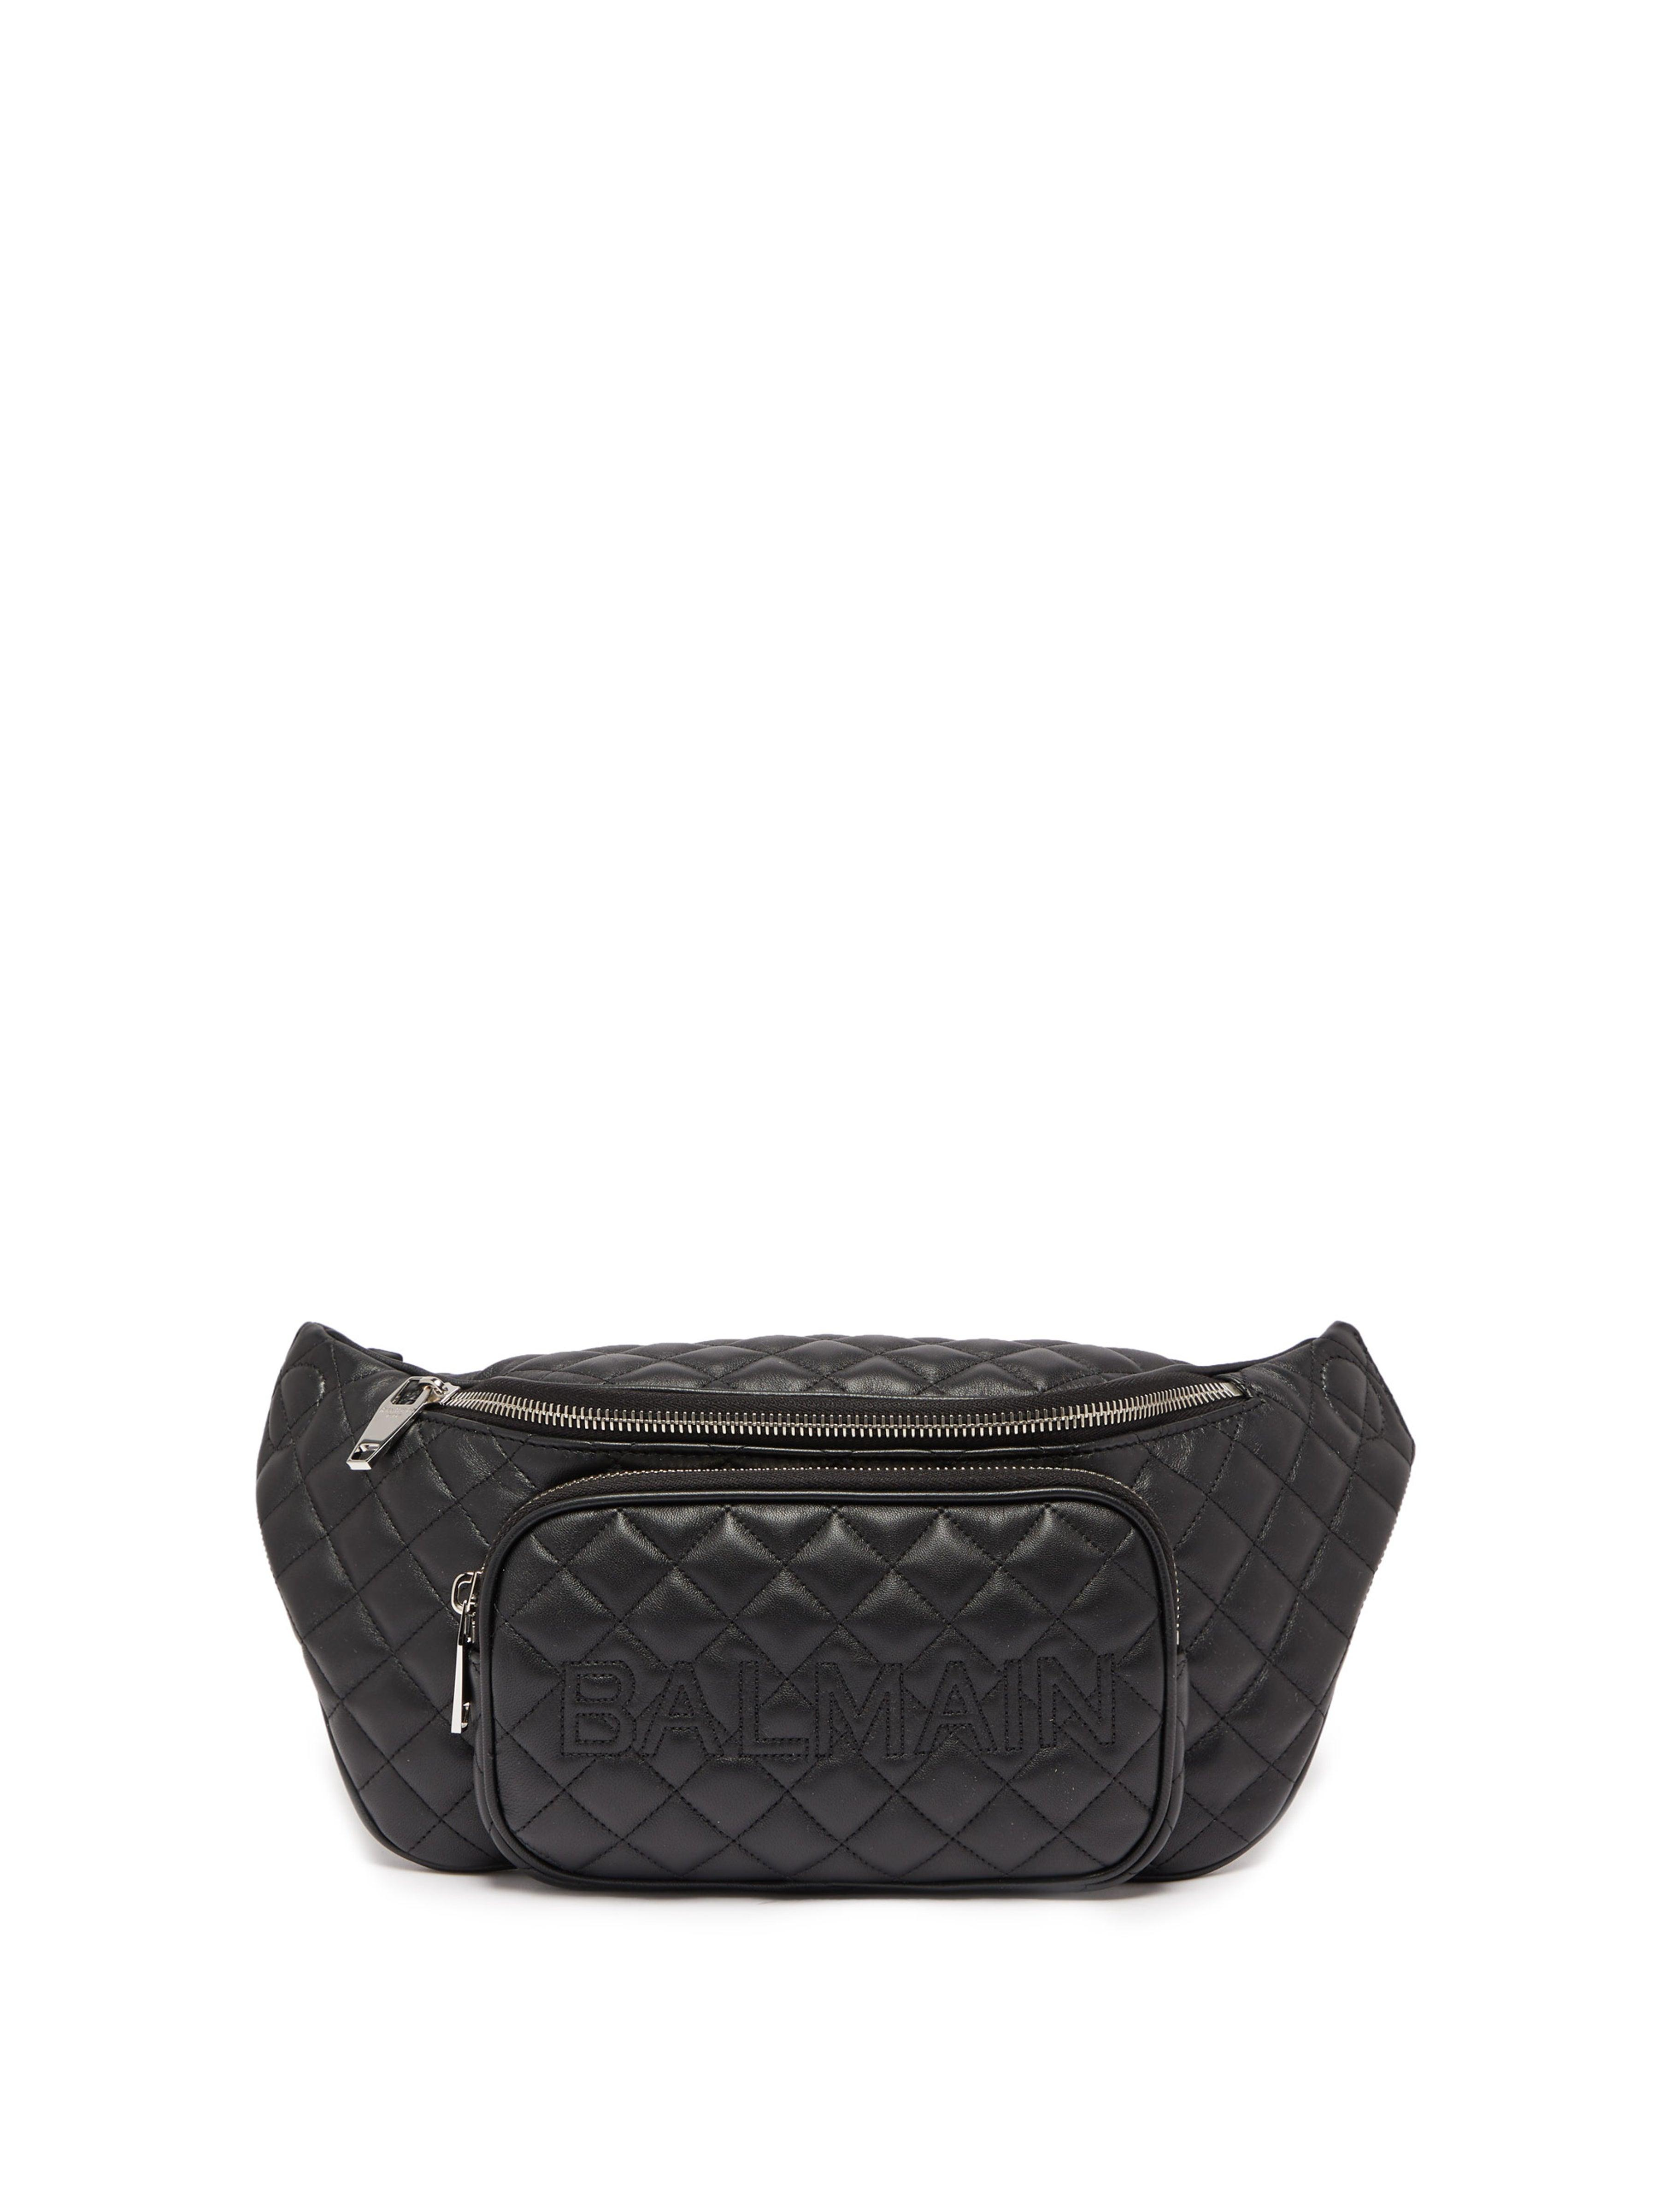 8f07b26e3 Balmain Quilted Leather Belt Bag in Black for Men - Lyst